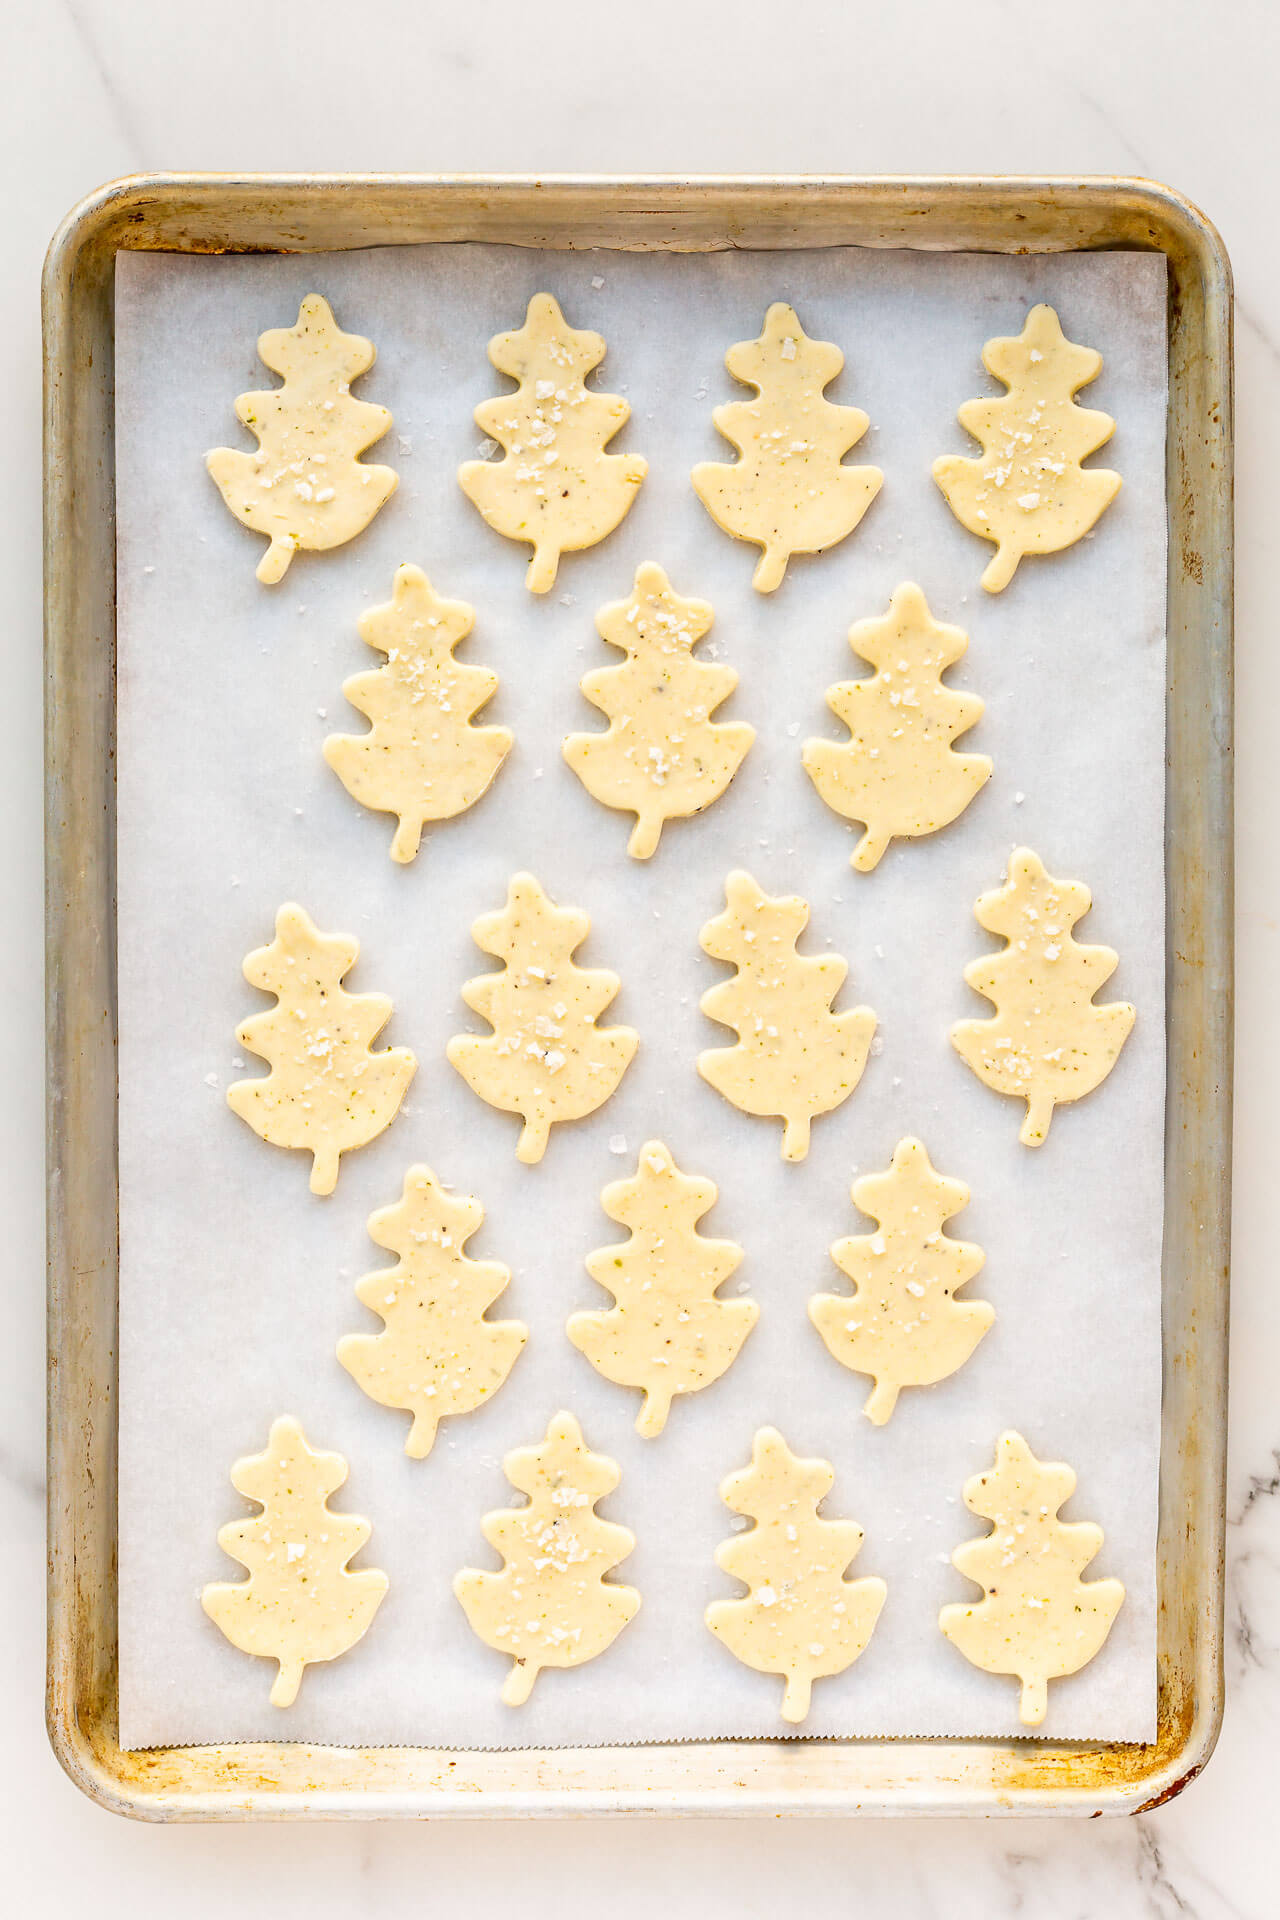 Oak-leaf shaped savoury shortbread biscuits cut-out and placed on a parchment-lined sheet pan ready for the oven